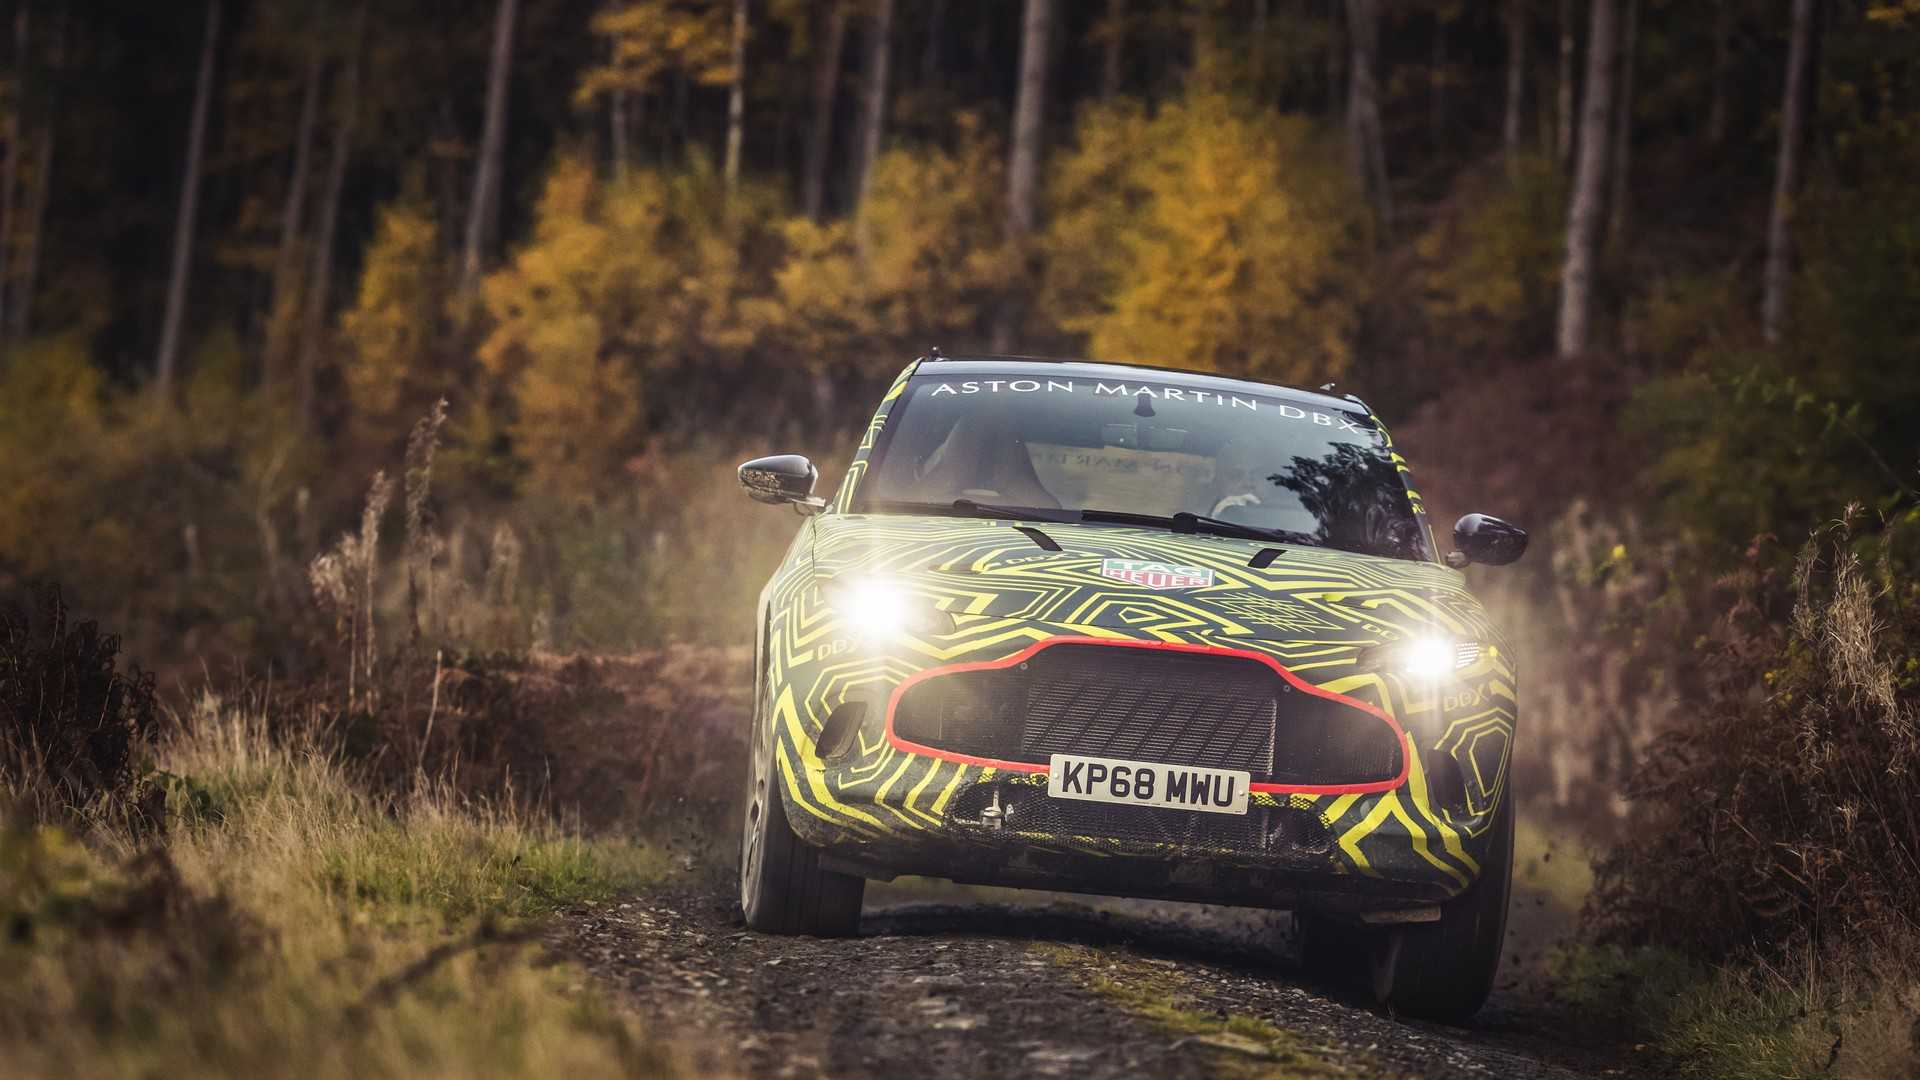 Here's Aston Martin's New DBX SUV Testing On A Filthy Rally Stage